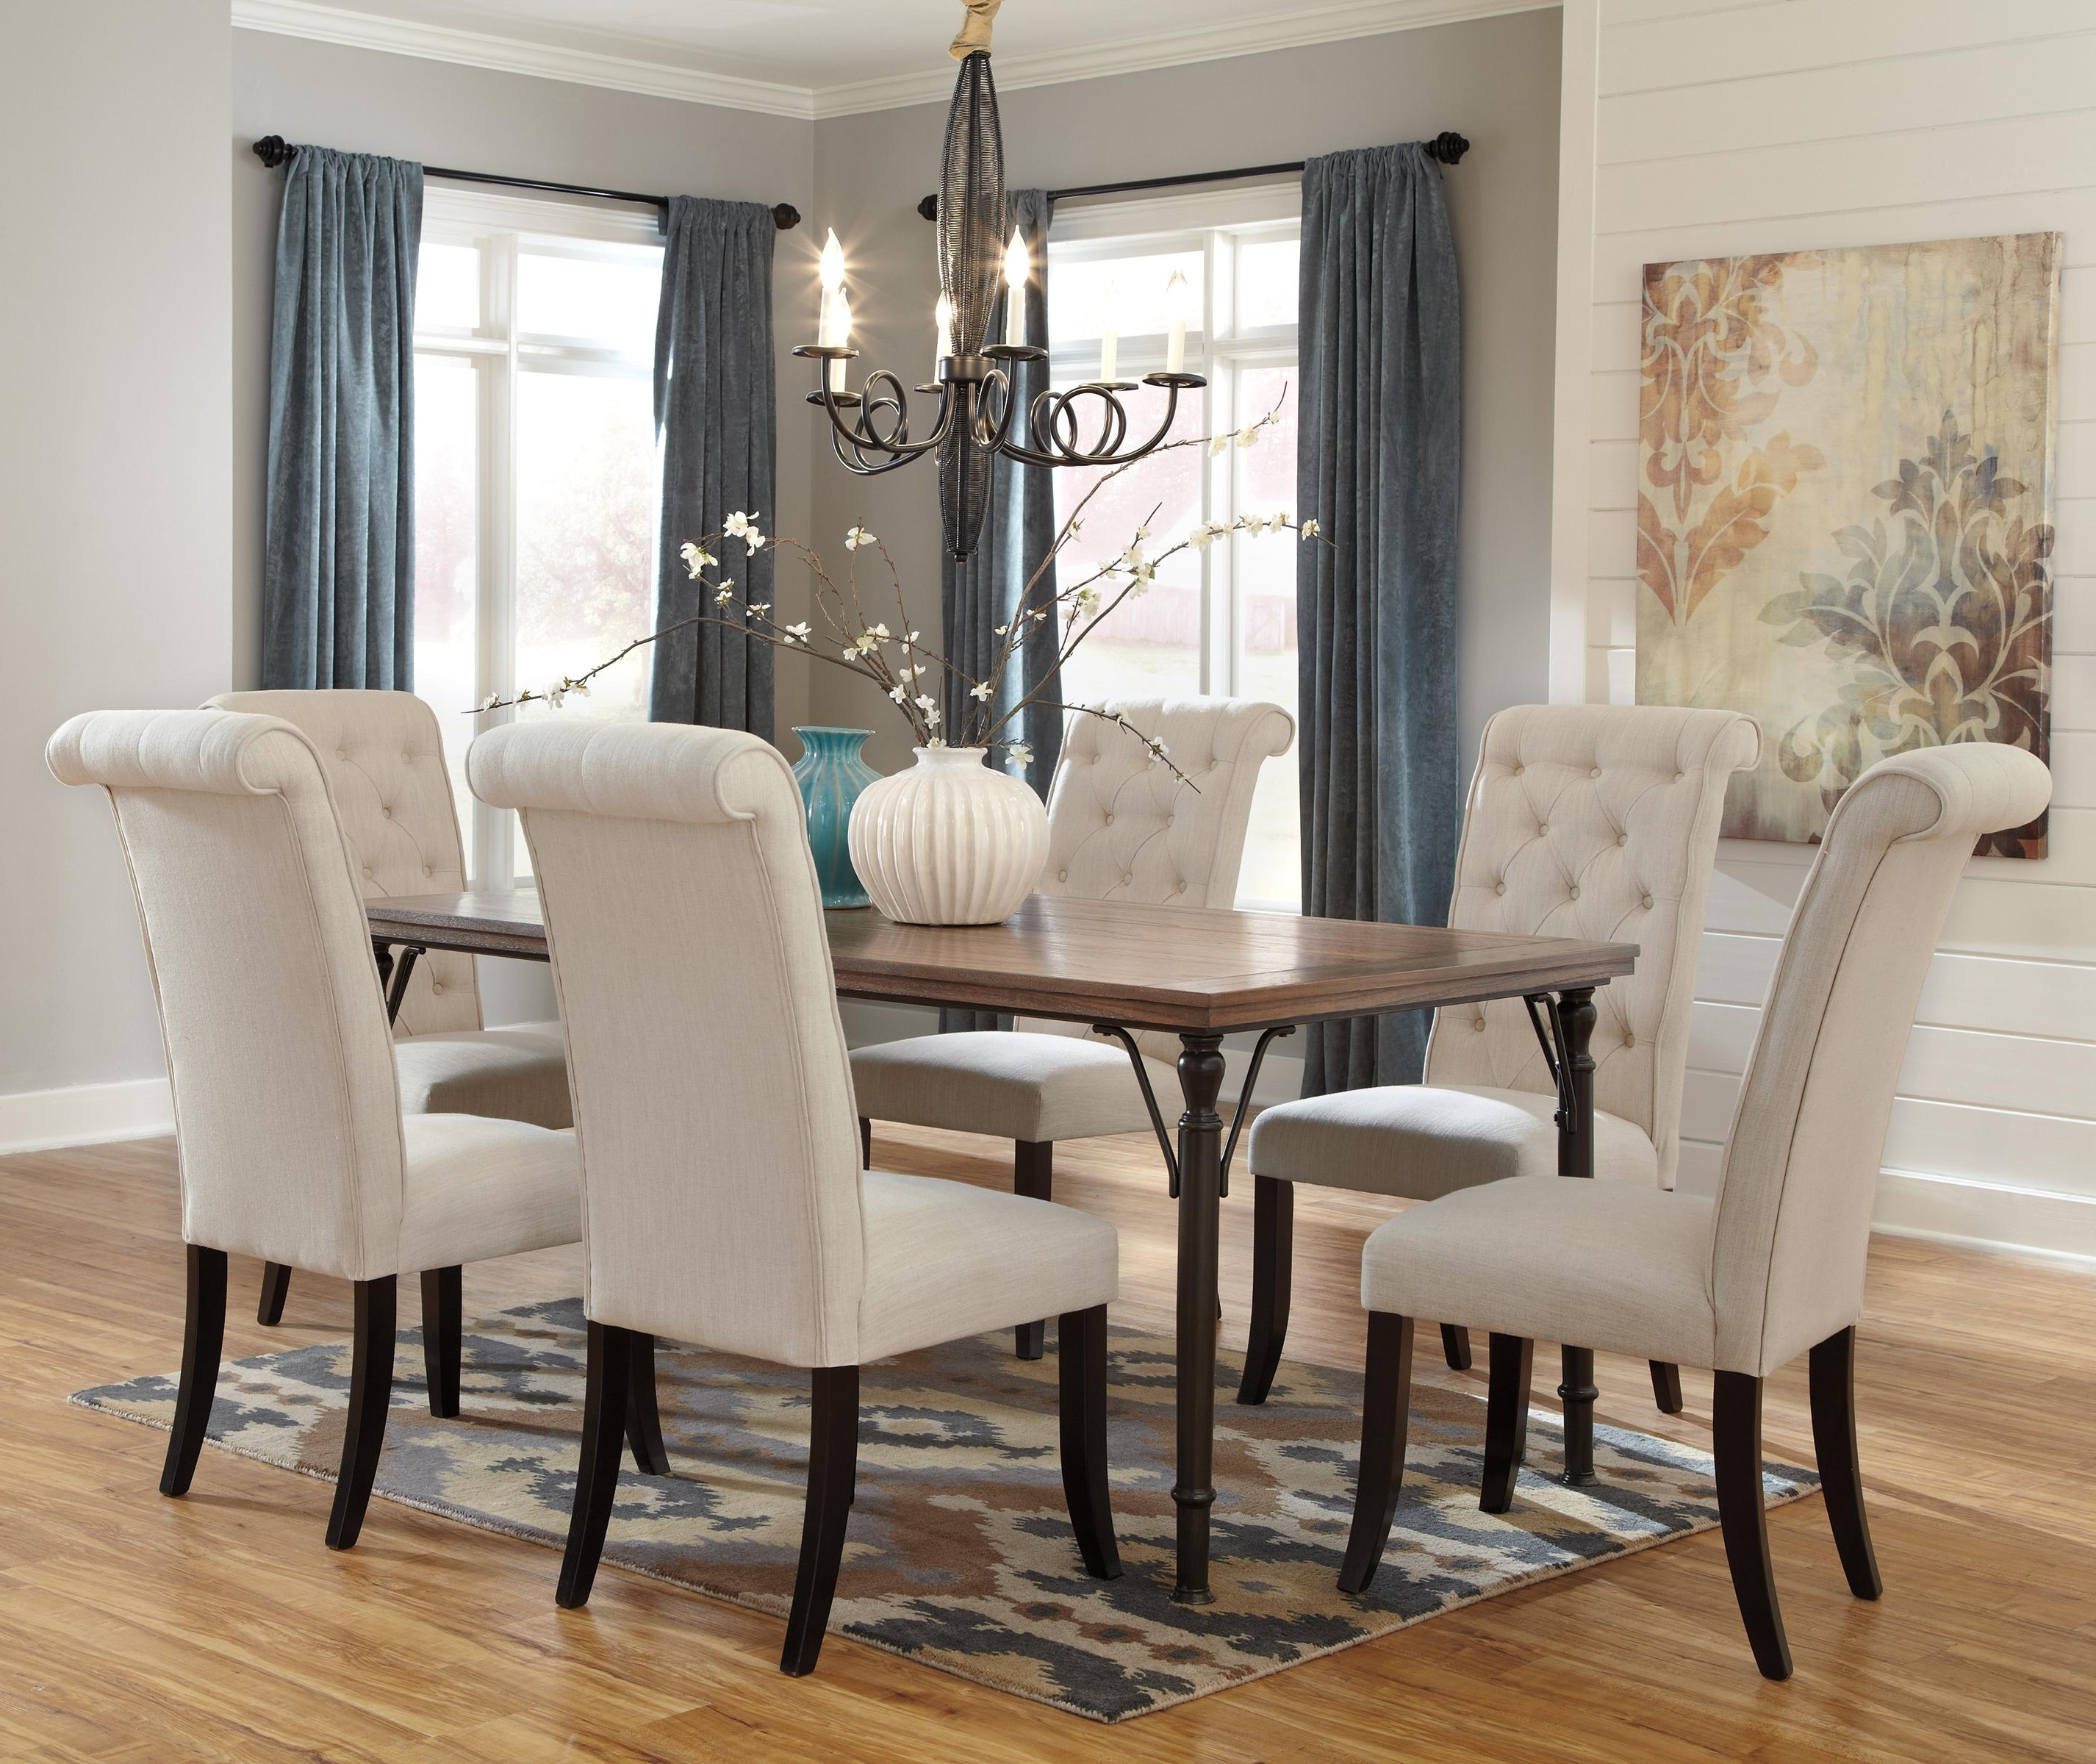 6 Chair Dining Table Sets Within 2017 Theodore 7 Piece Rectangular Dining Room Table Set W/ Wood Top (Gallery 6 of 25)